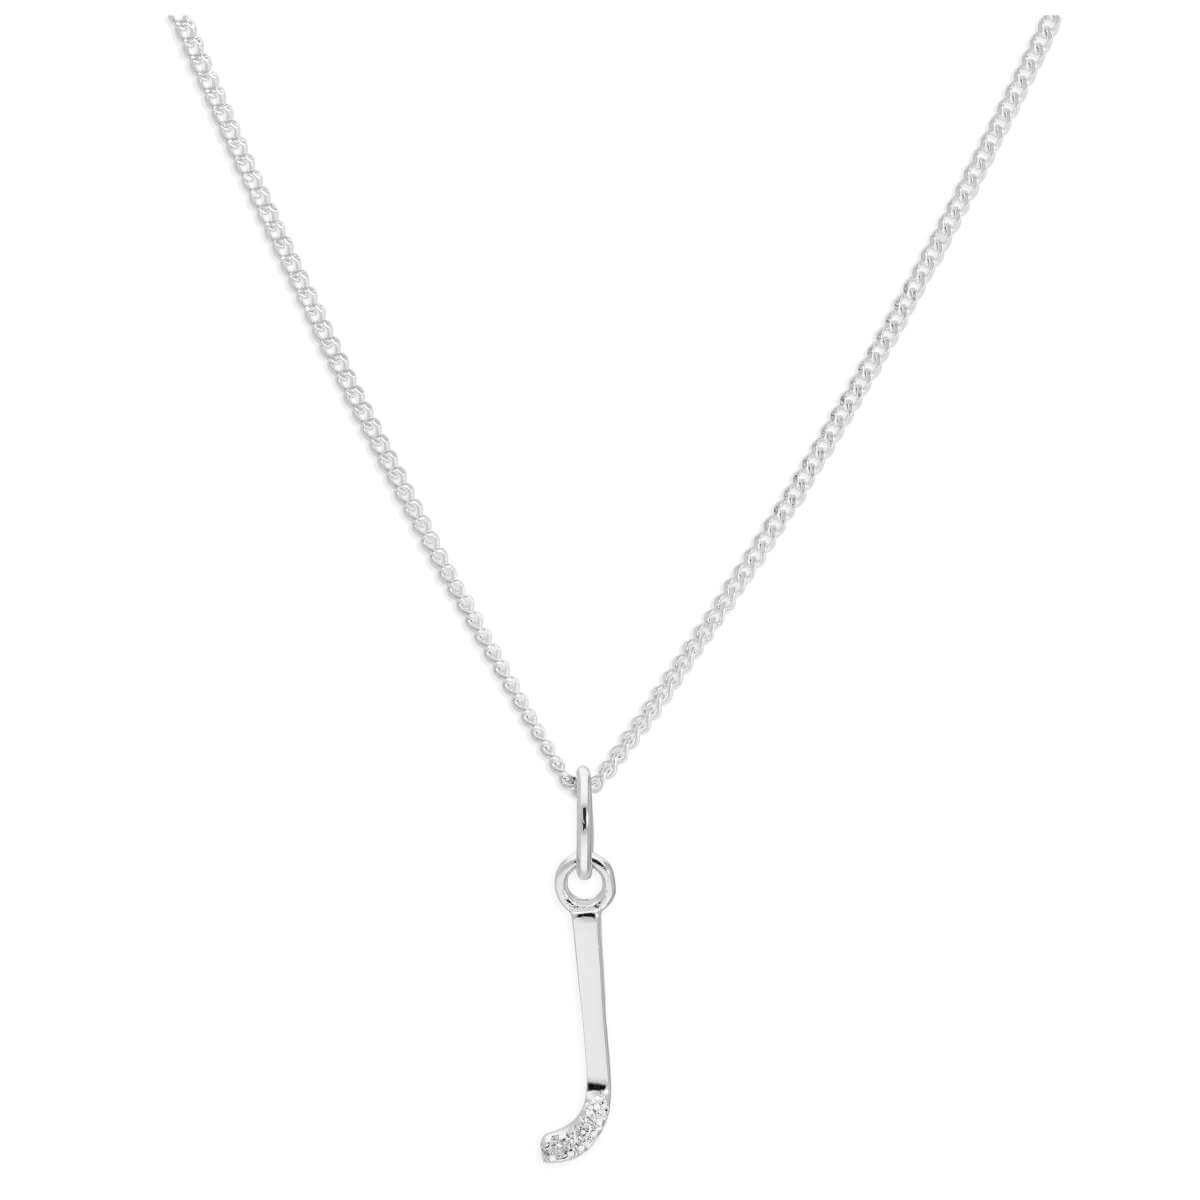 Sterling Silver 3 Stone Geniune Diamond 0.012ct Letter J Necklace Pendant 14 - 32 Inches